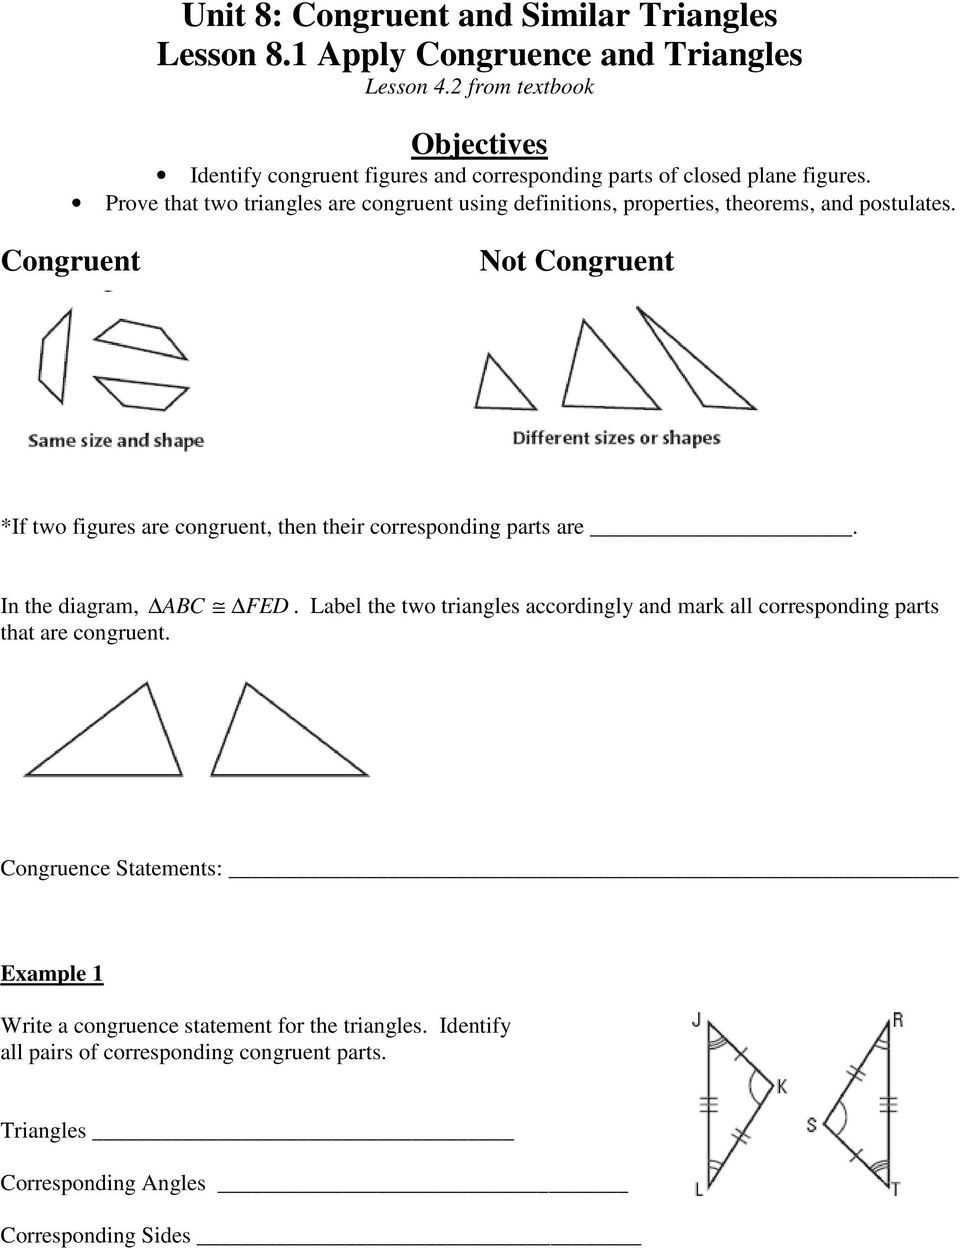 Proving Triangles Congruent Worksheet Unit 8 Congruent and Similar Triangles Lesson 8 1 Apply